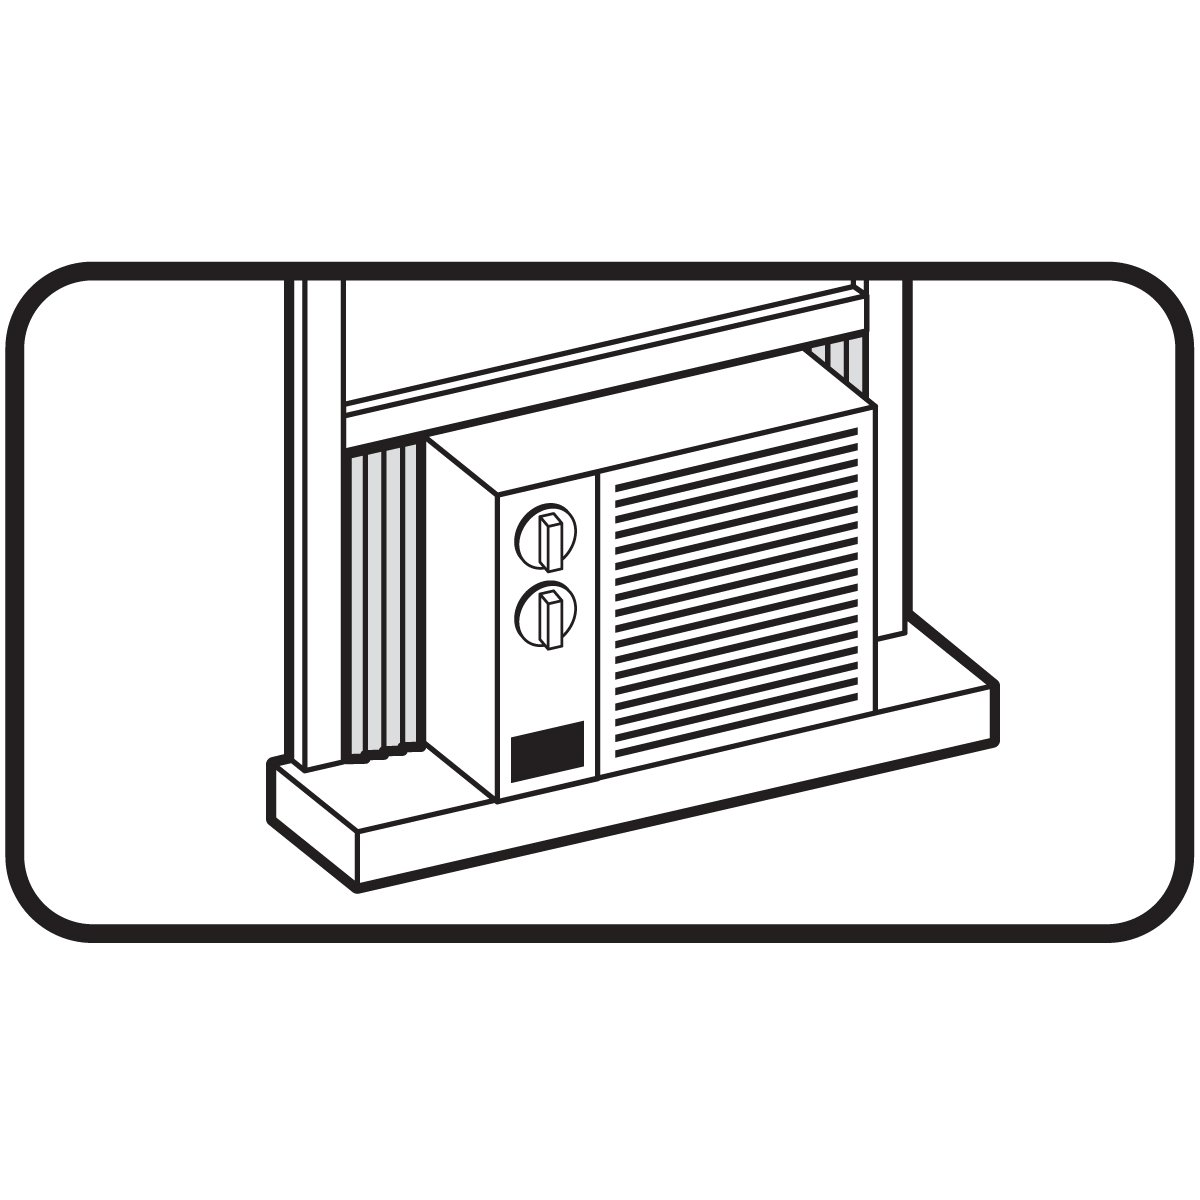 M-D Building Products 8308 Air Conditioner Side Panel Kit, Gray